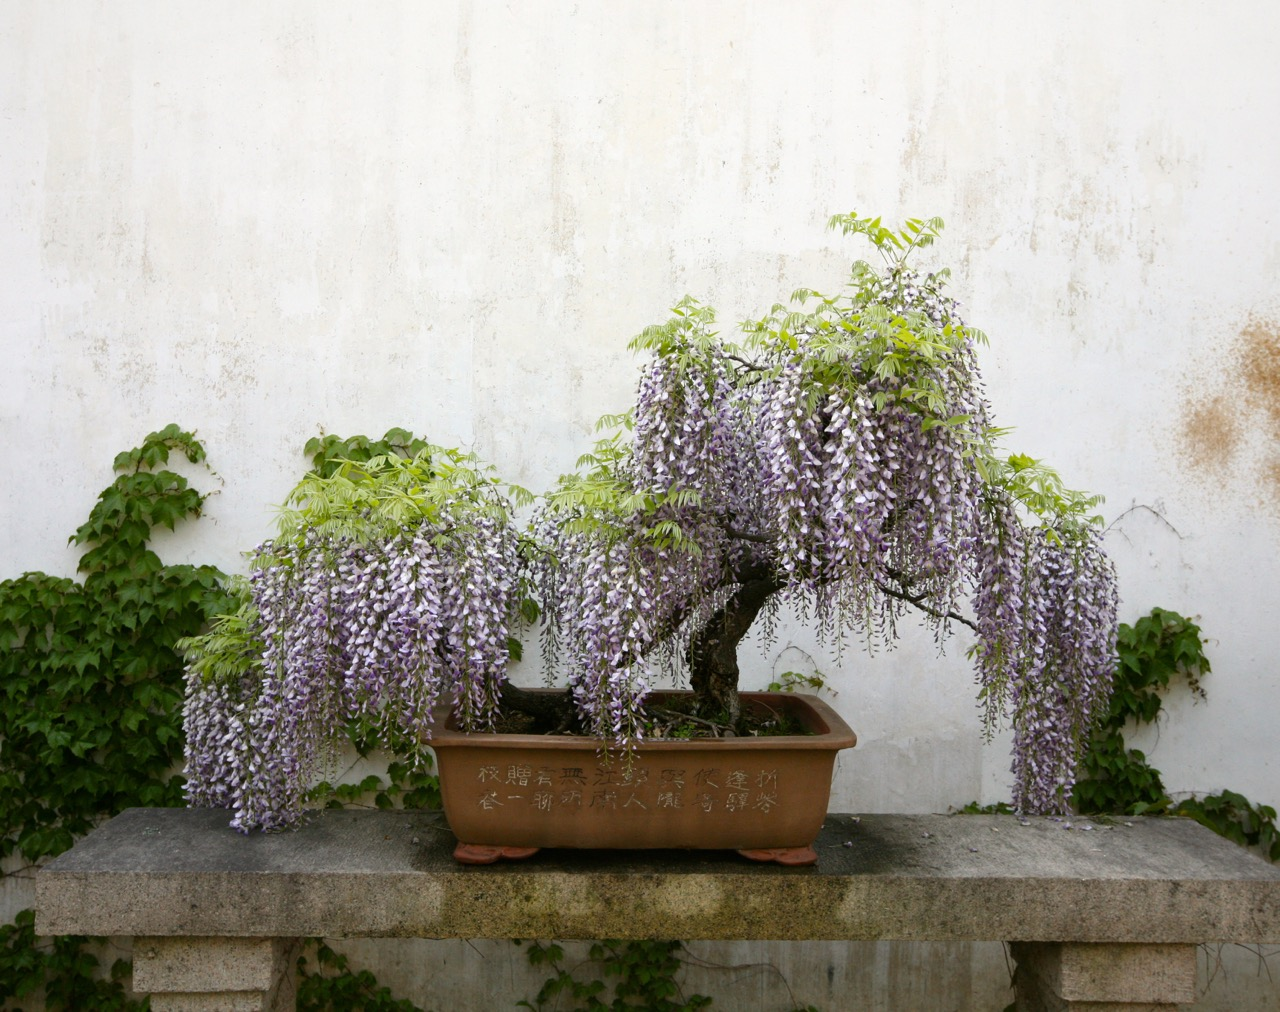 A wisteria tray landscape. Wisteria are given as gifts to wish good luck to a friend embarking on a new venture.